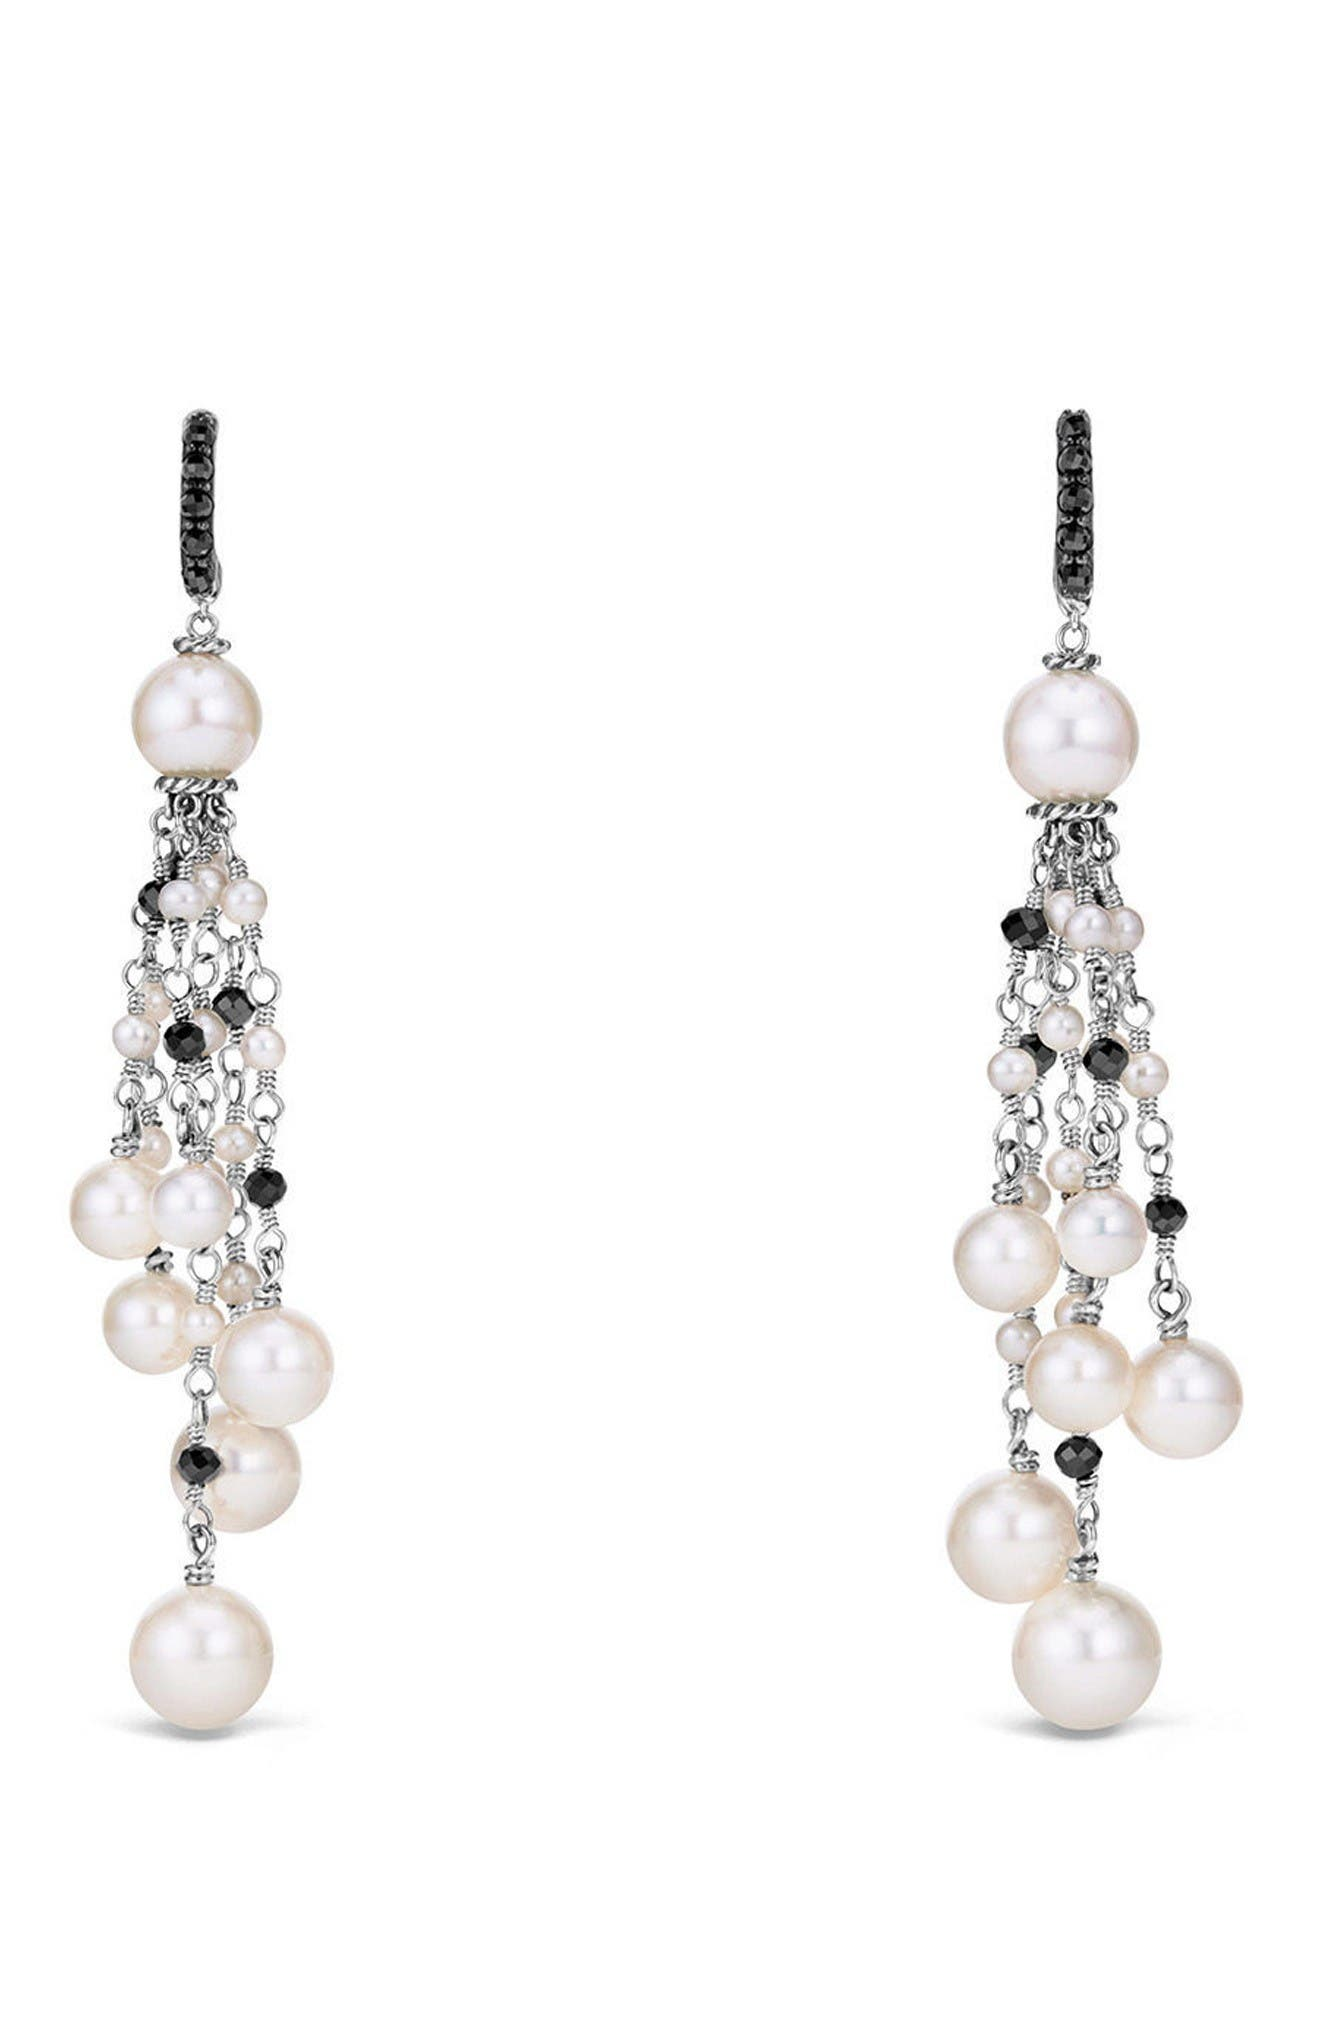 Solari Pearl Fringe Earrings,                             Main thumbnail 1, color,                             Pearl/ Black Spinel